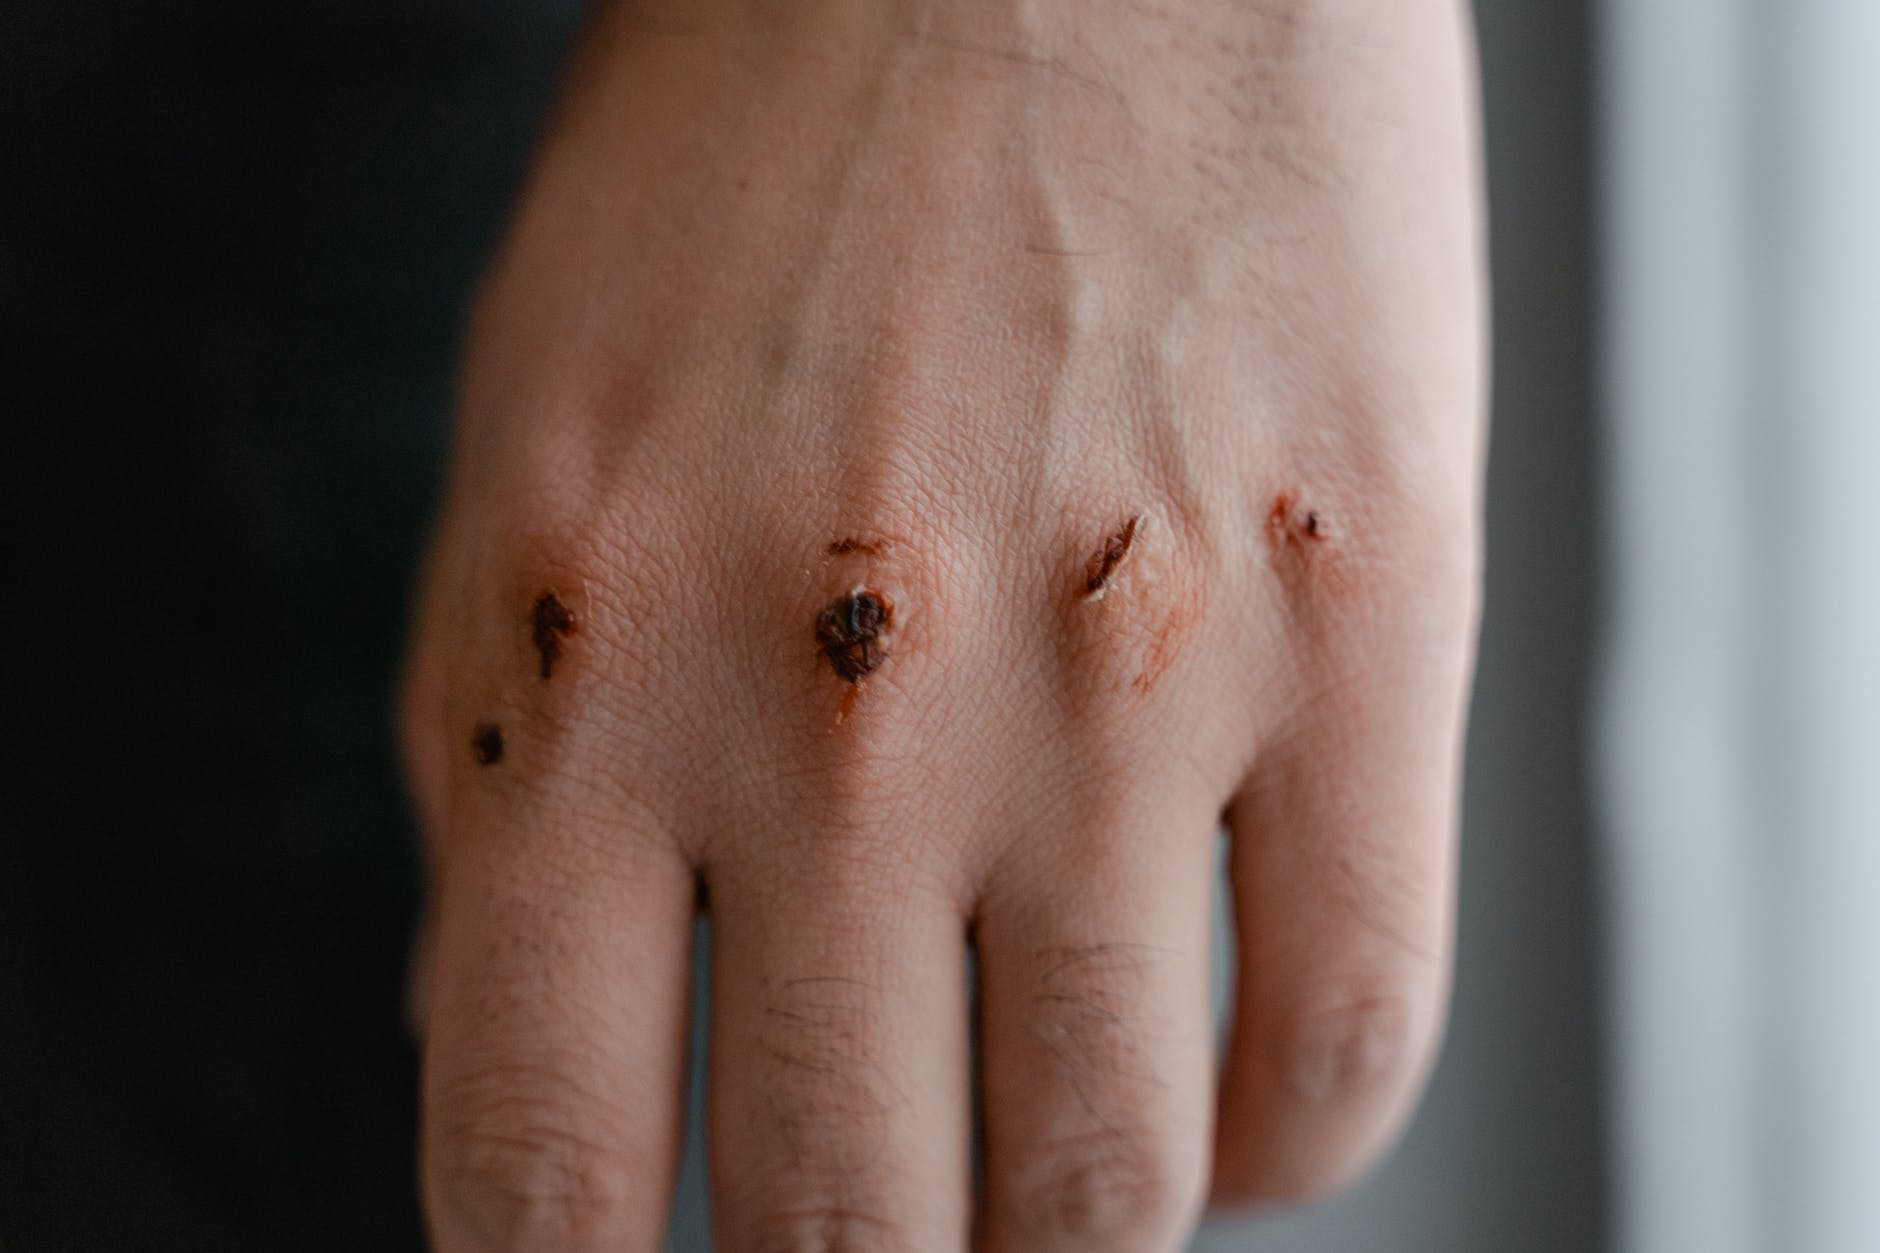 wounded knuckles